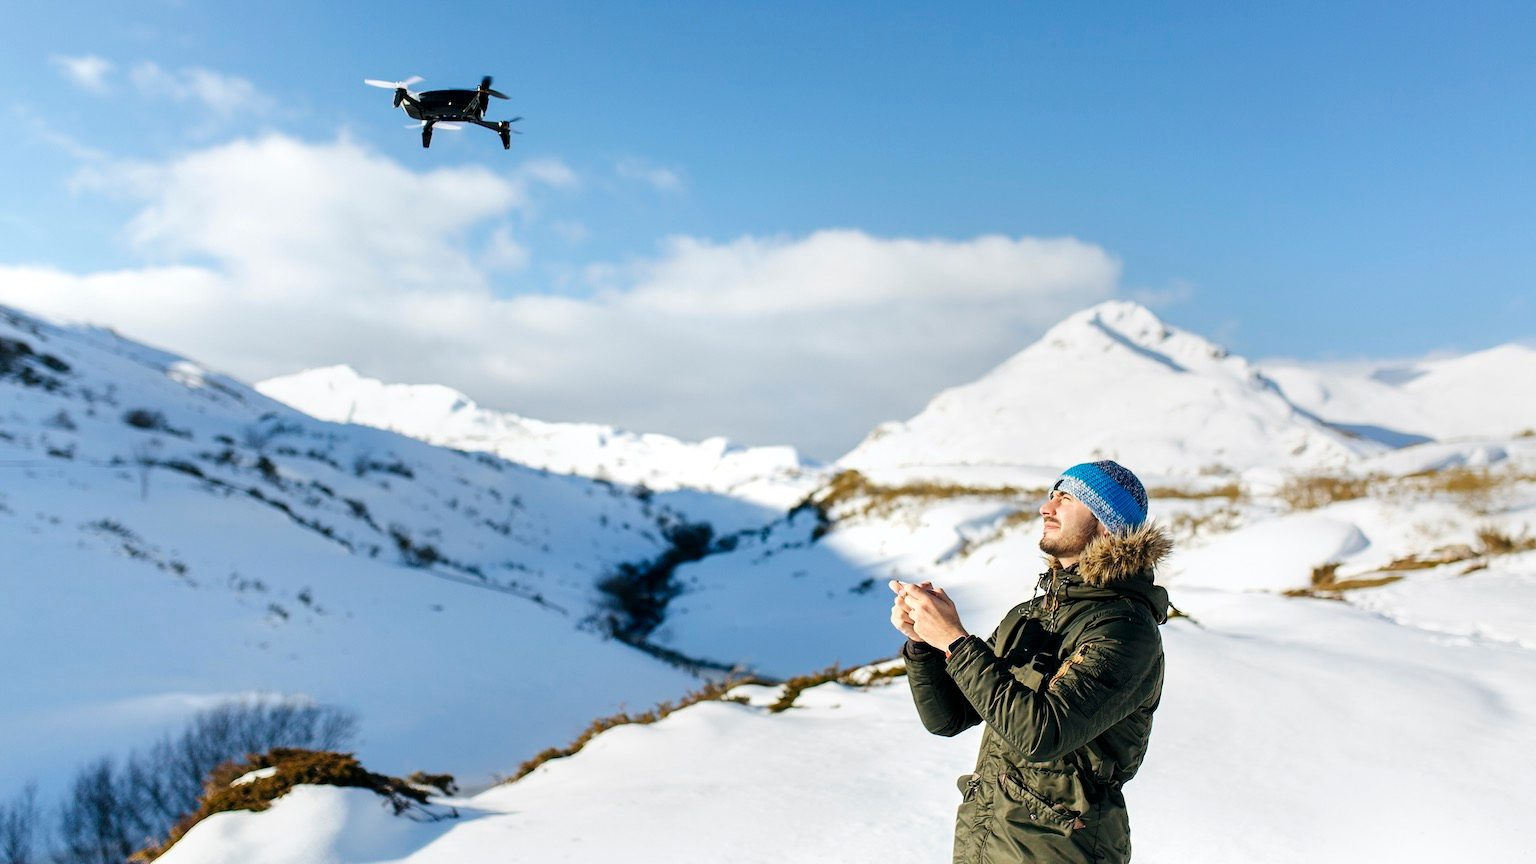 Asturias, Spain, young man driving a drone in a snowy mountains